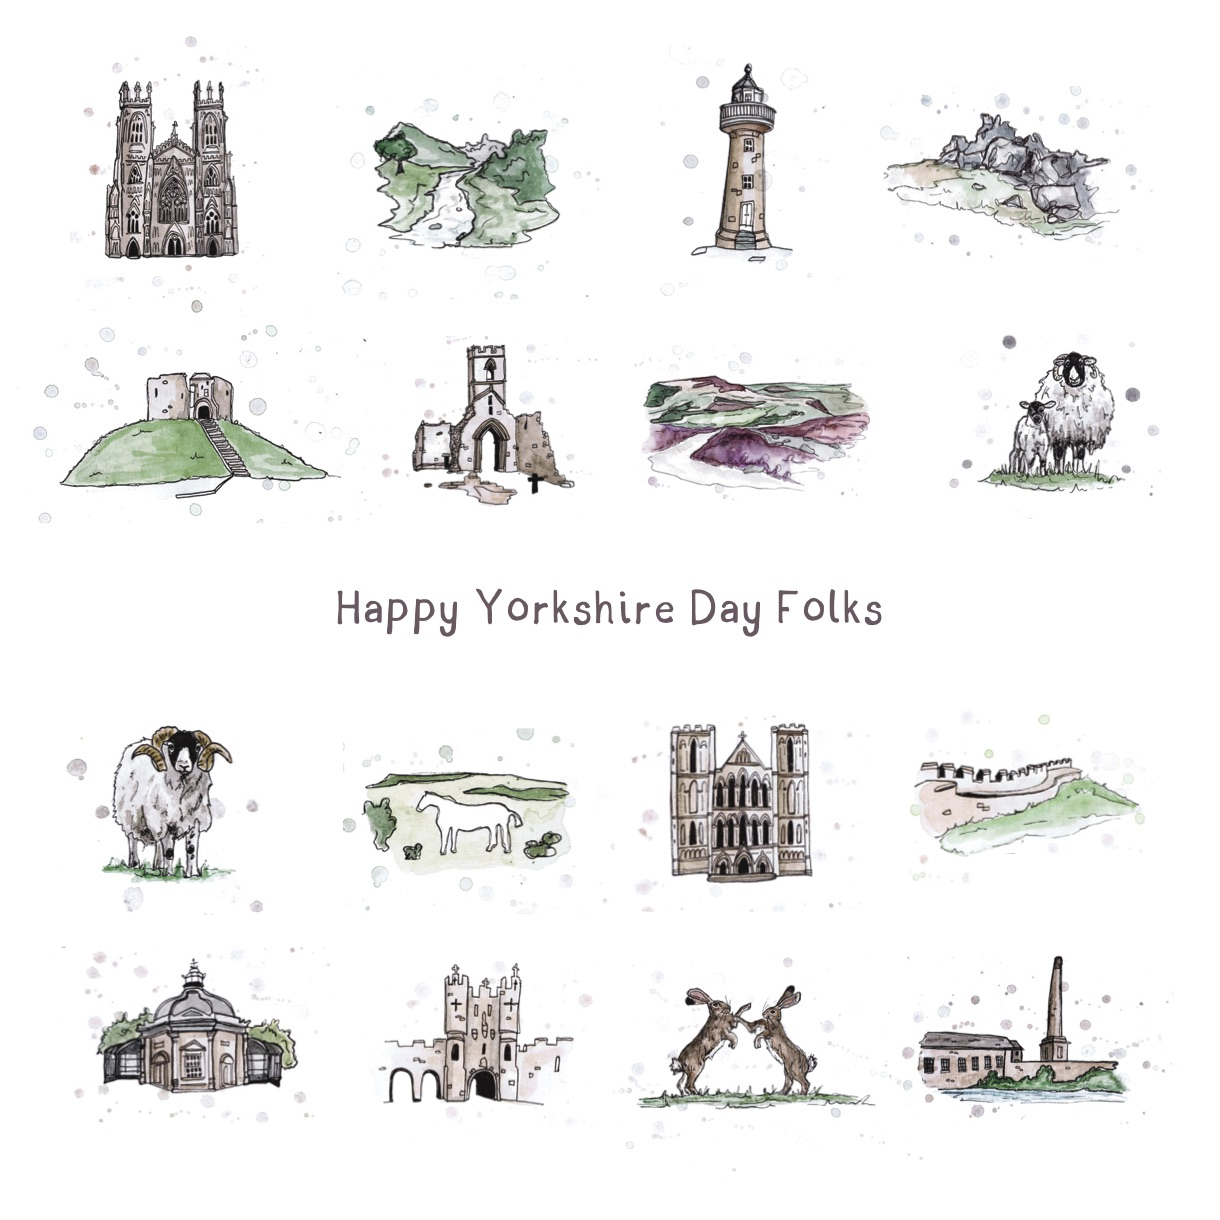 Yorskhire Day